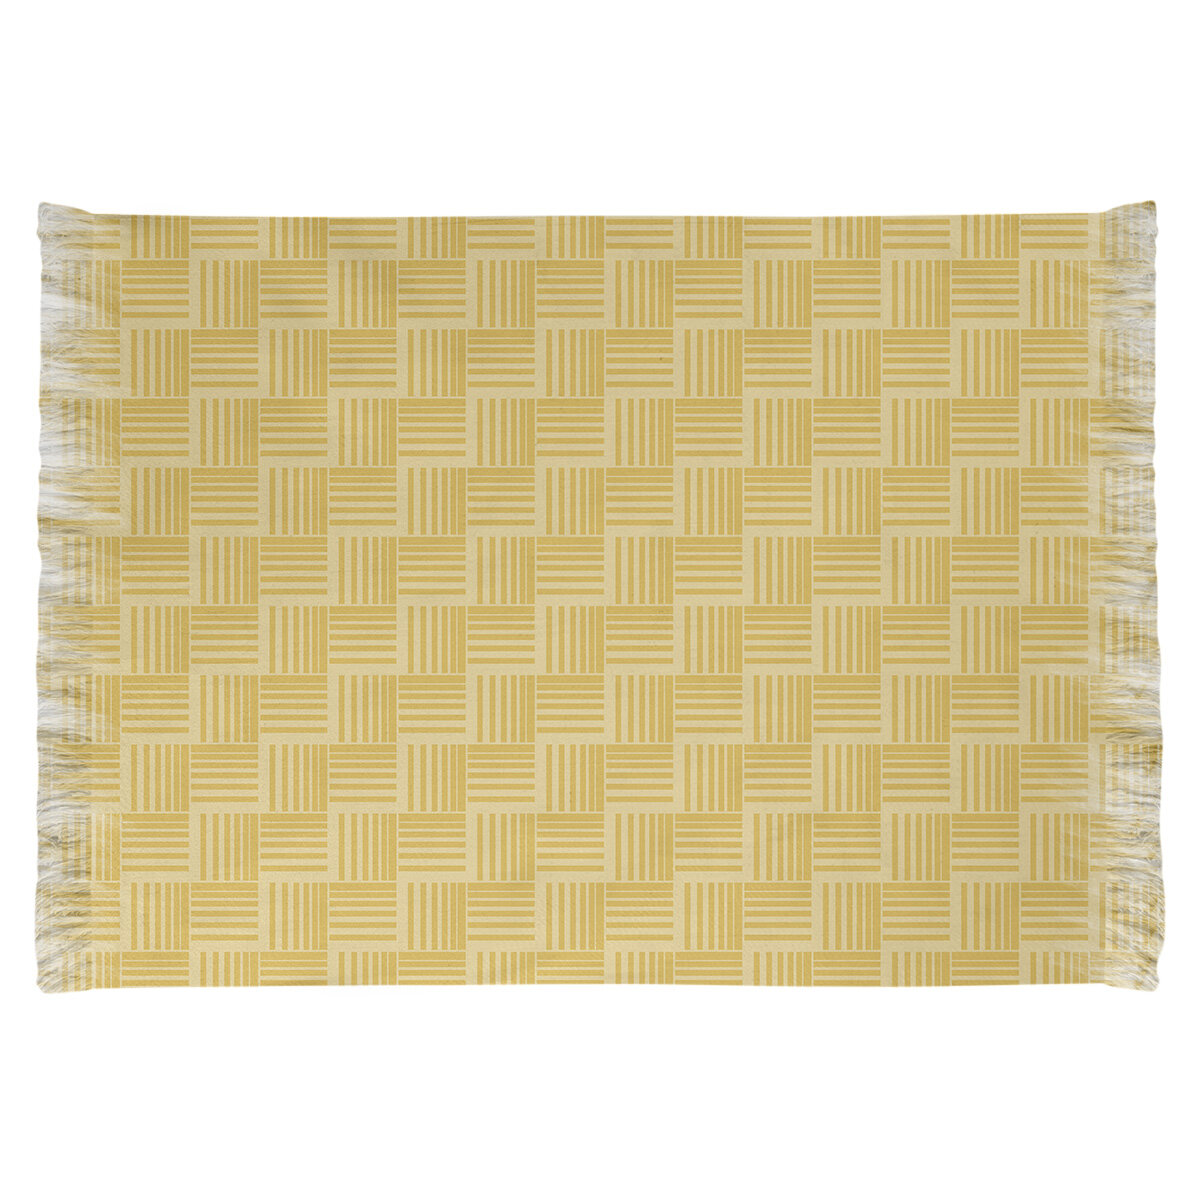 East Urban Home Basketweave Stripes Yellow Area Rug Wayfair